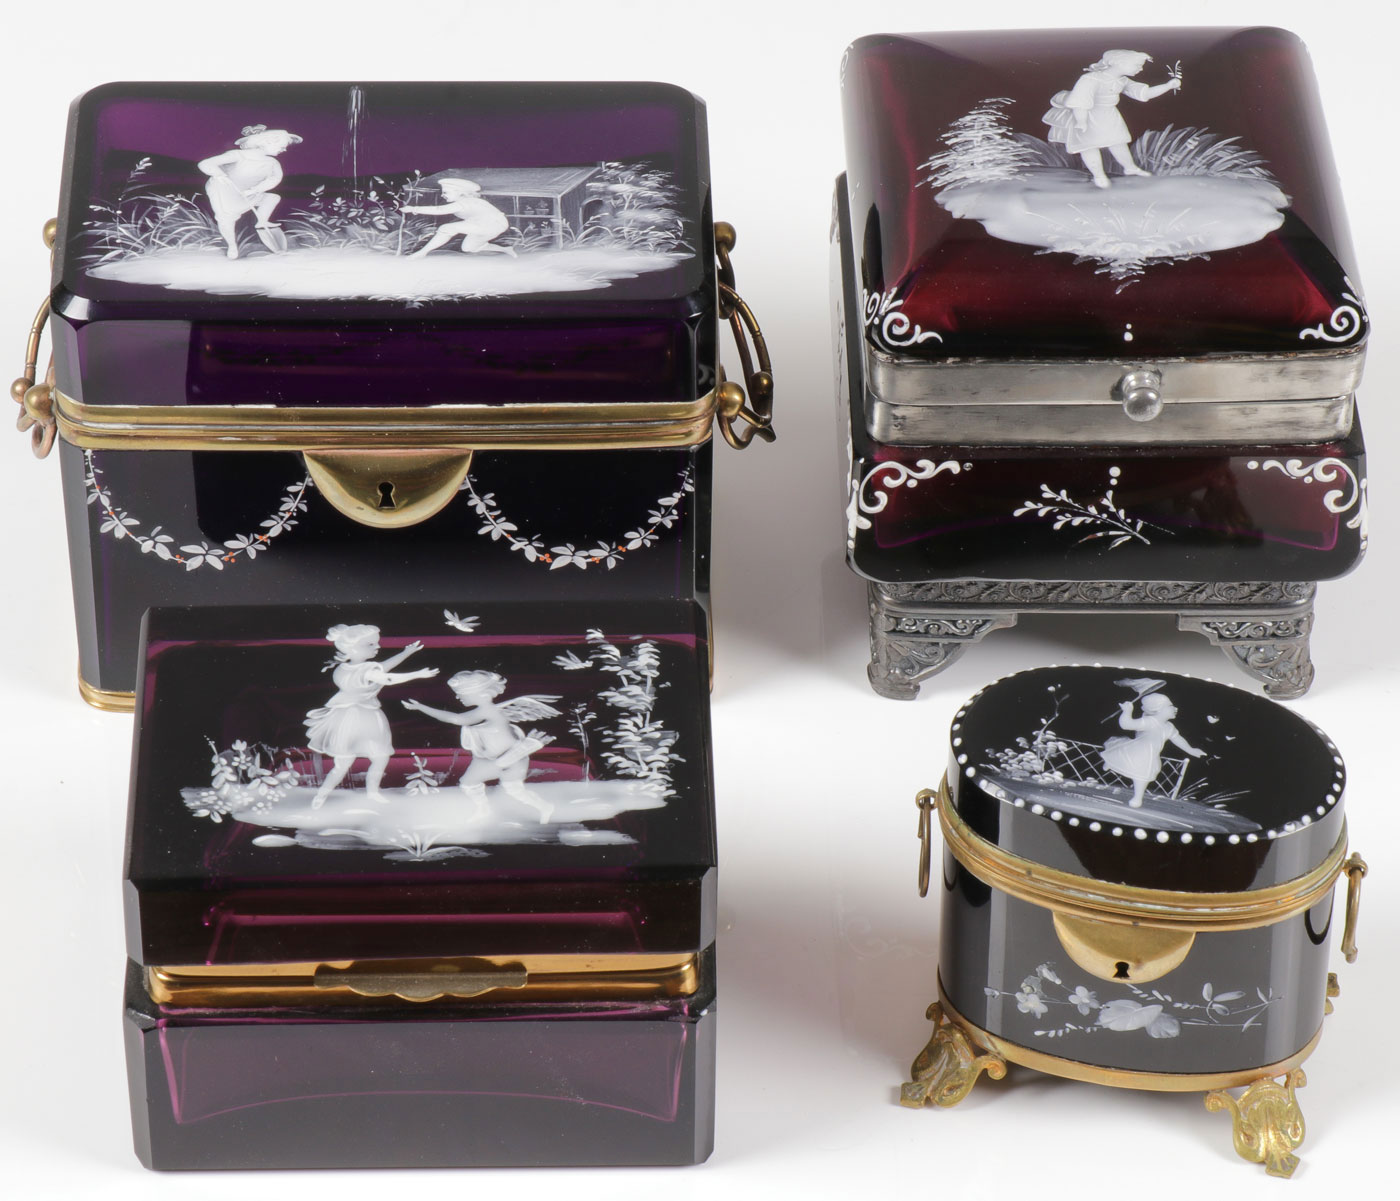 FOUR MARY GREGORY AMETHYST BOXES, C. 1880 - Image 2 of 2